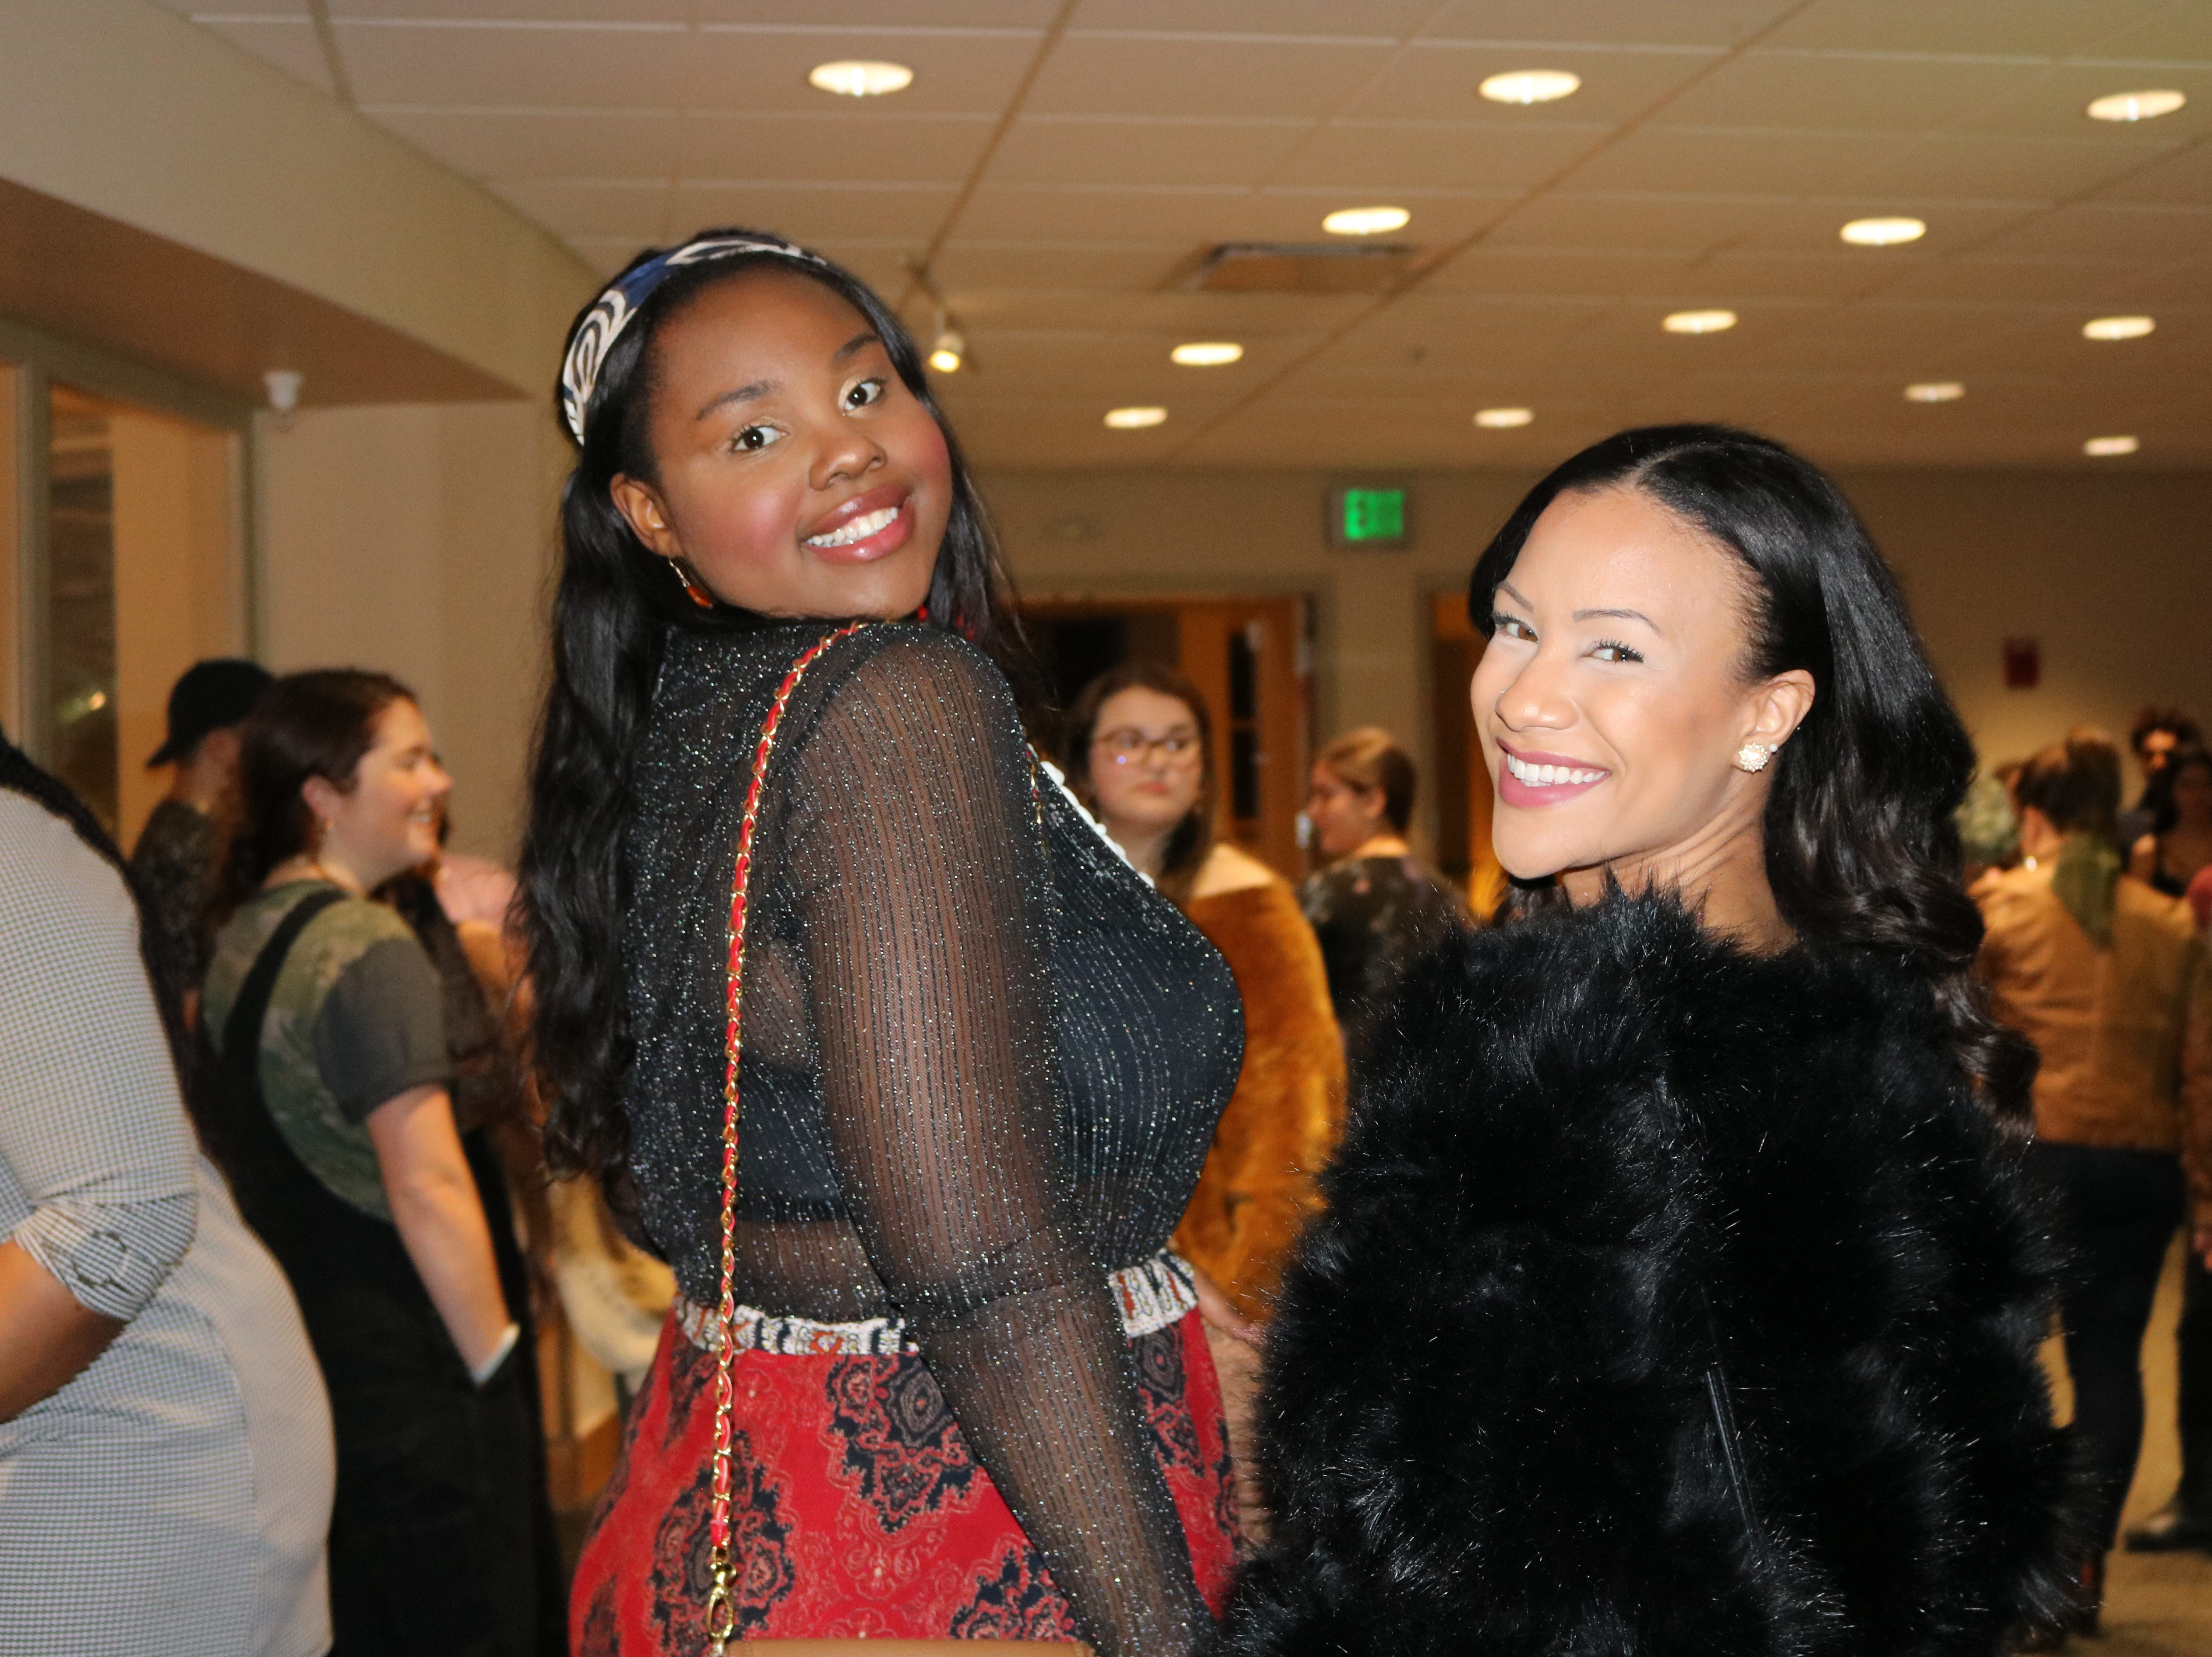 """UVM students Javana Clark and Gabrielle Benimadho loved the energy of the 2019 fashion show """"Paint it Black,"""" calling it a """"celebration of black beauty,"""" on a break from the catwalk at the Davis Center."""